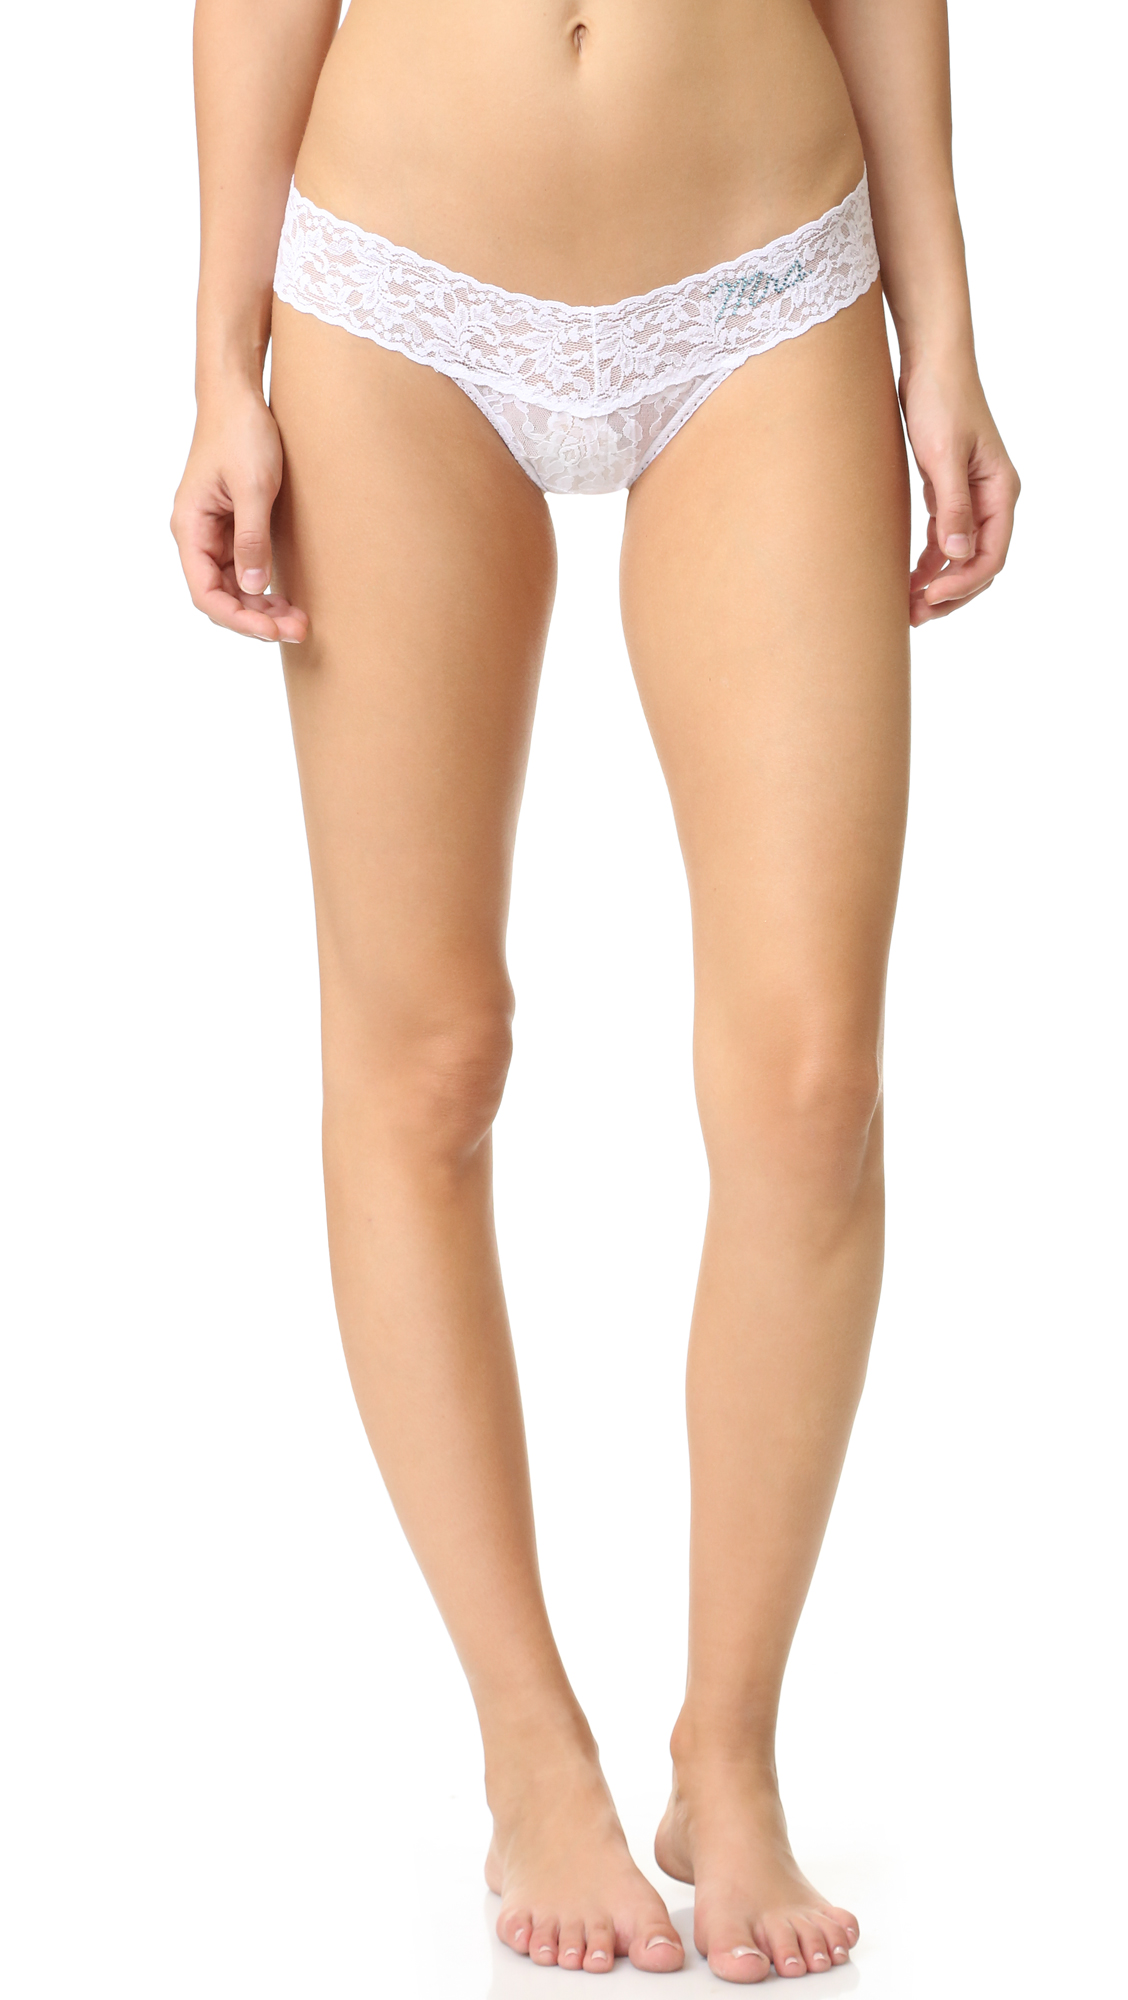 hanky panky female 265511 hanky panky mrs low rise thong whitebaby blue